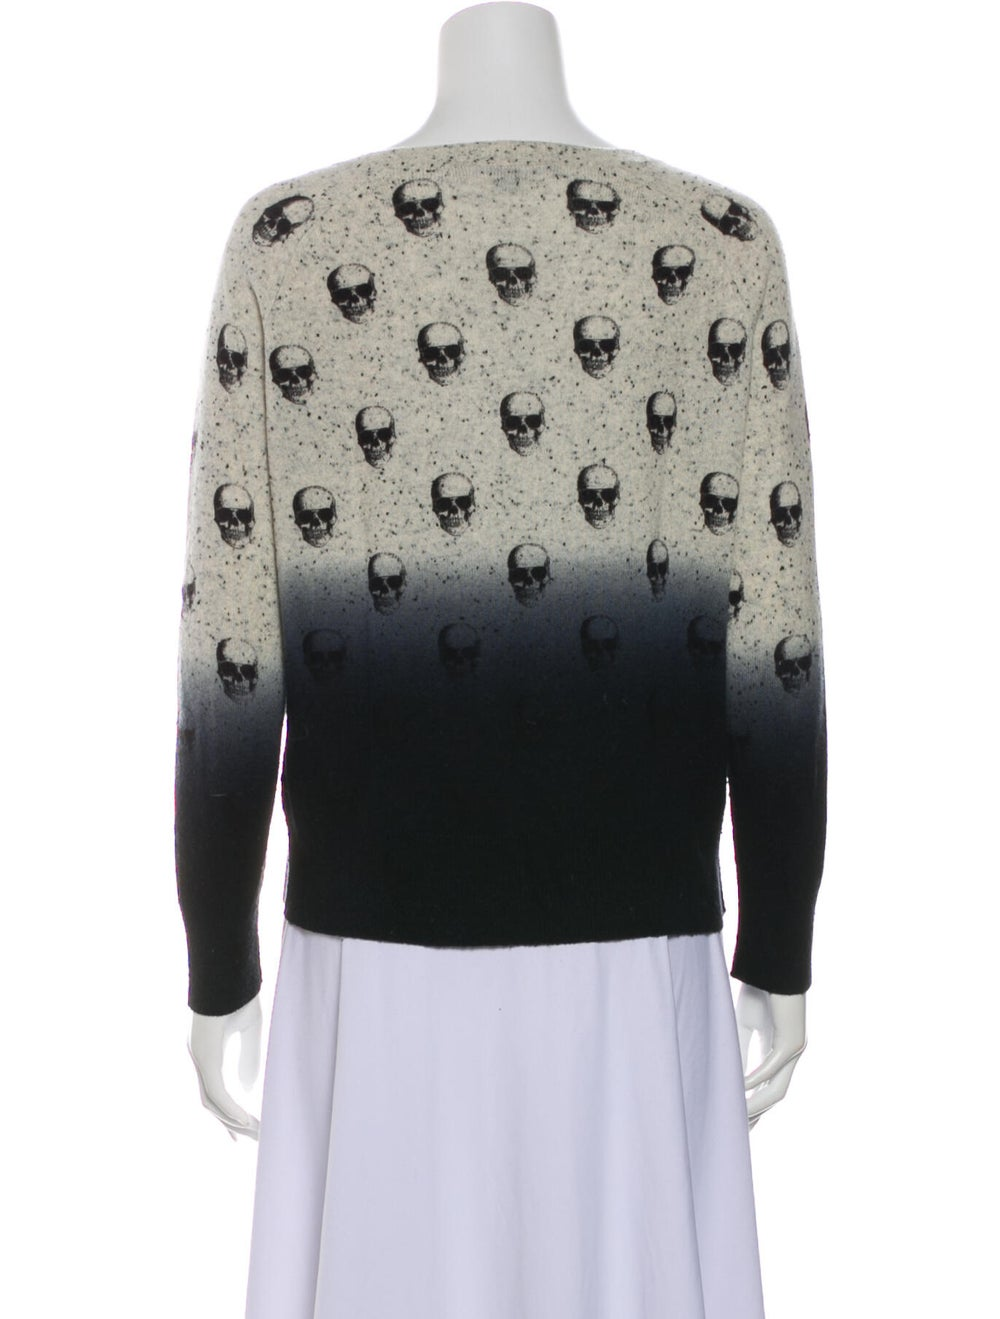 Skull Cashmere Cashmere Printed Sweater - image 3